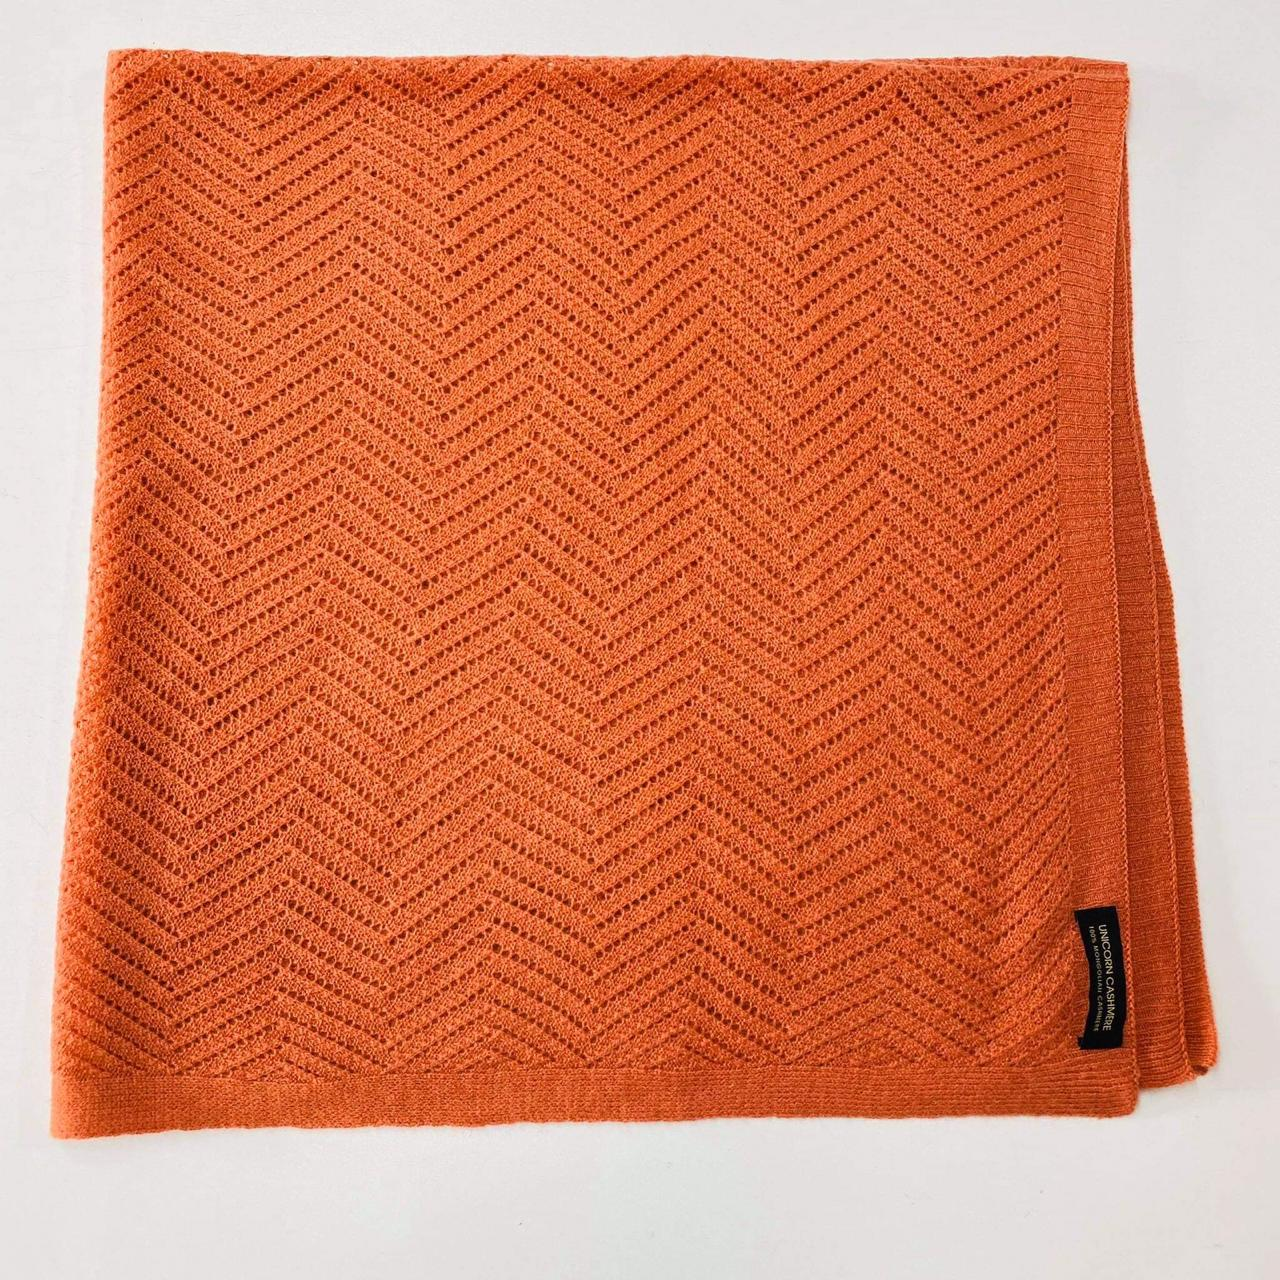 Le Tolui - Blanket for travel or home